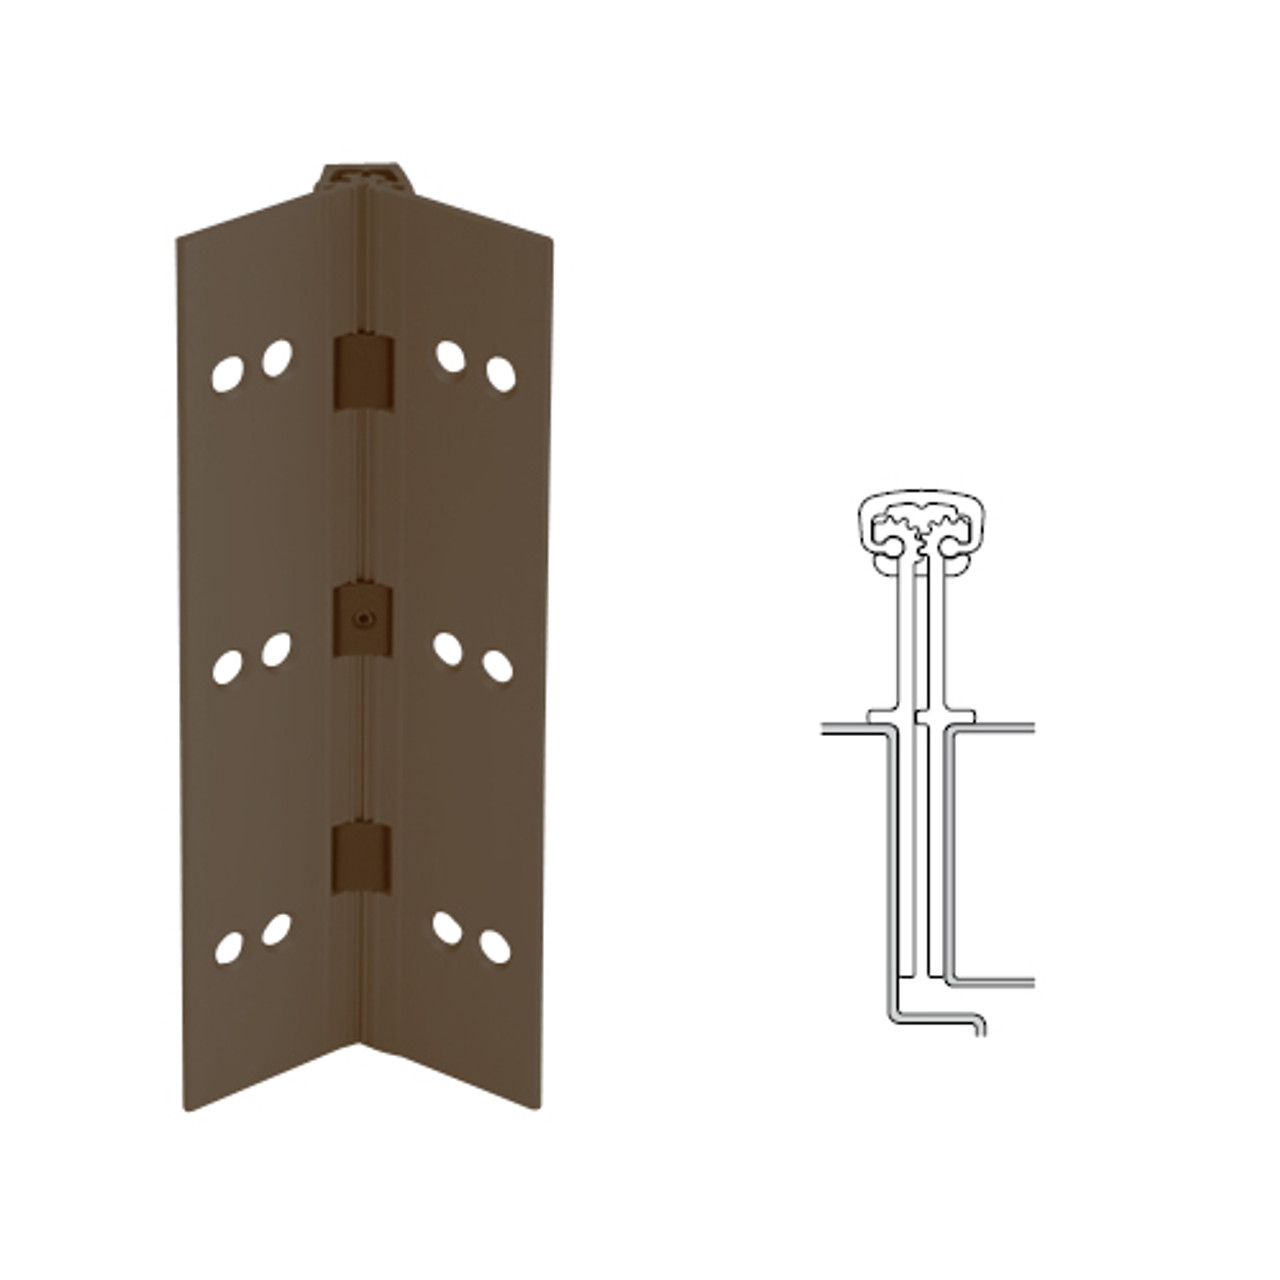 040XY-313AN-95 IVES Full Mortise Continuous Geared Hinges in Dark Bronze Anodized